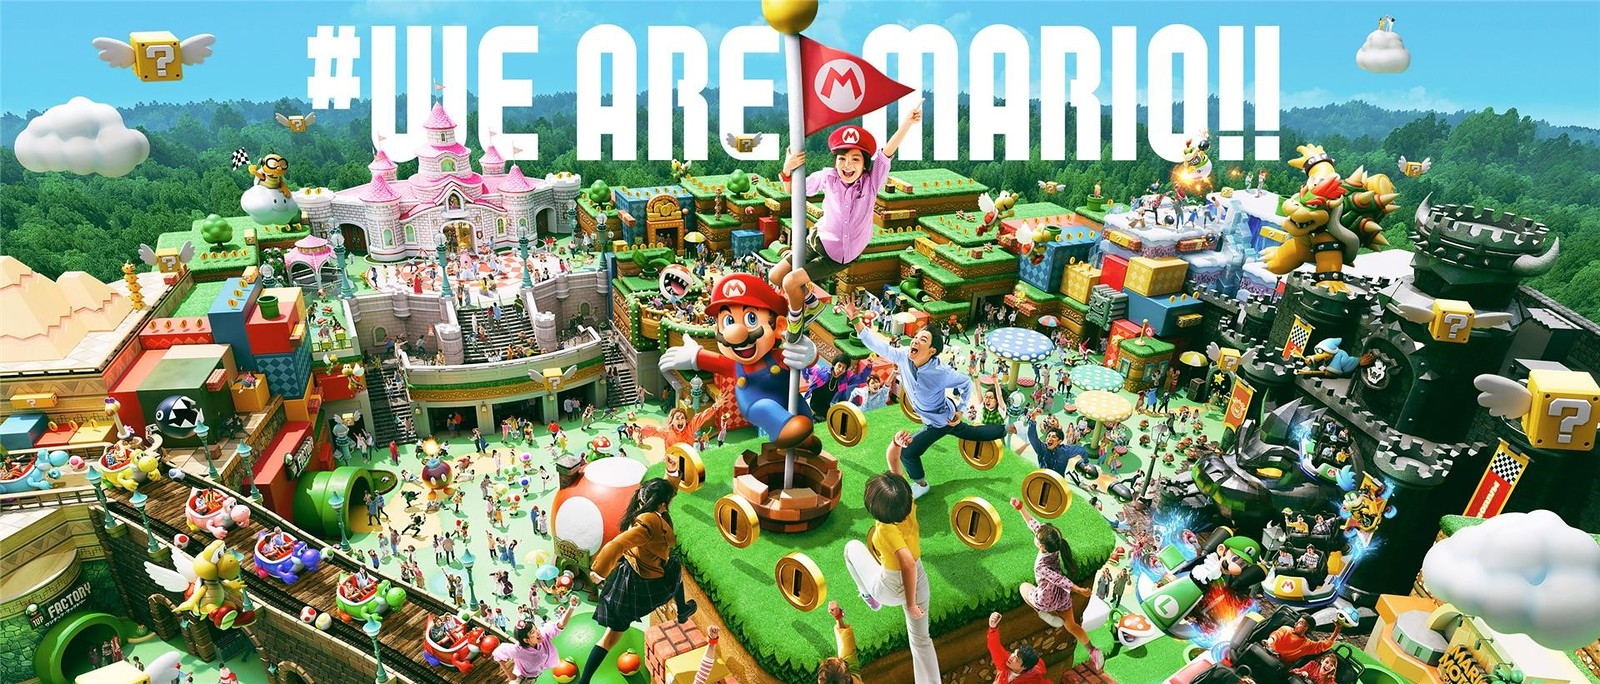 usj-super-nintendo-world-overall-view-we-are-mario-a